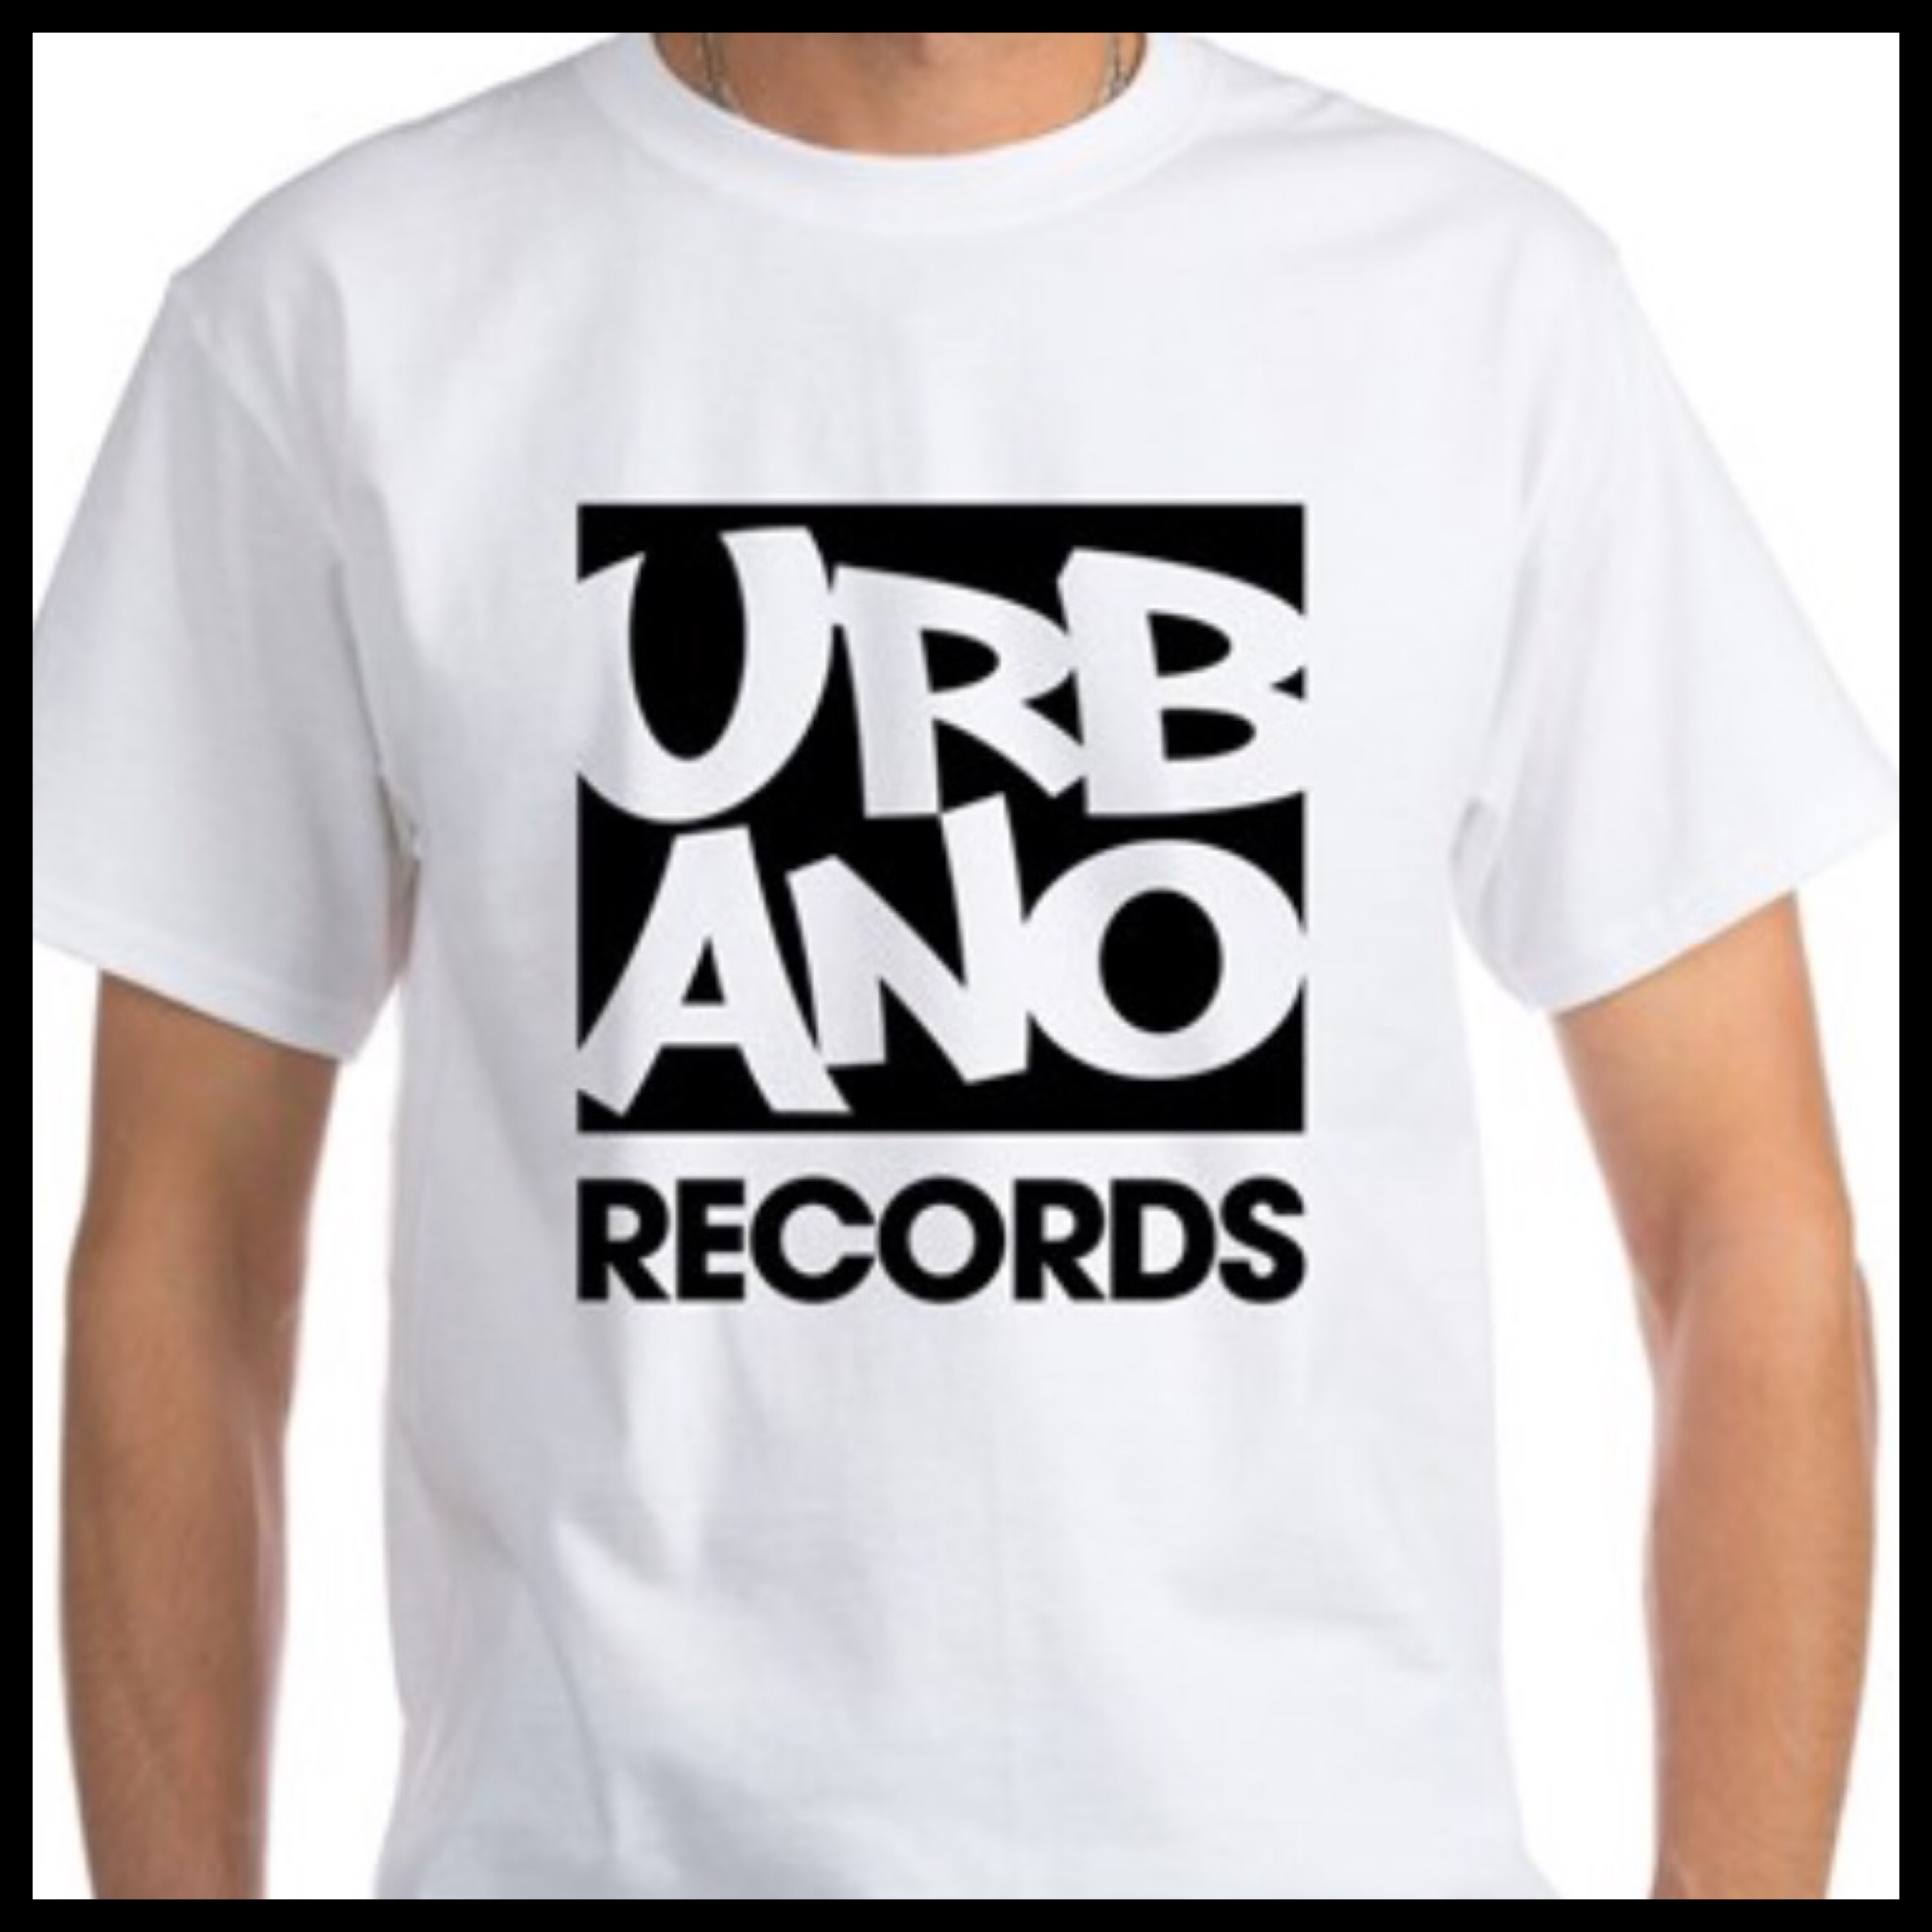 Urbano Records White T-Shirt